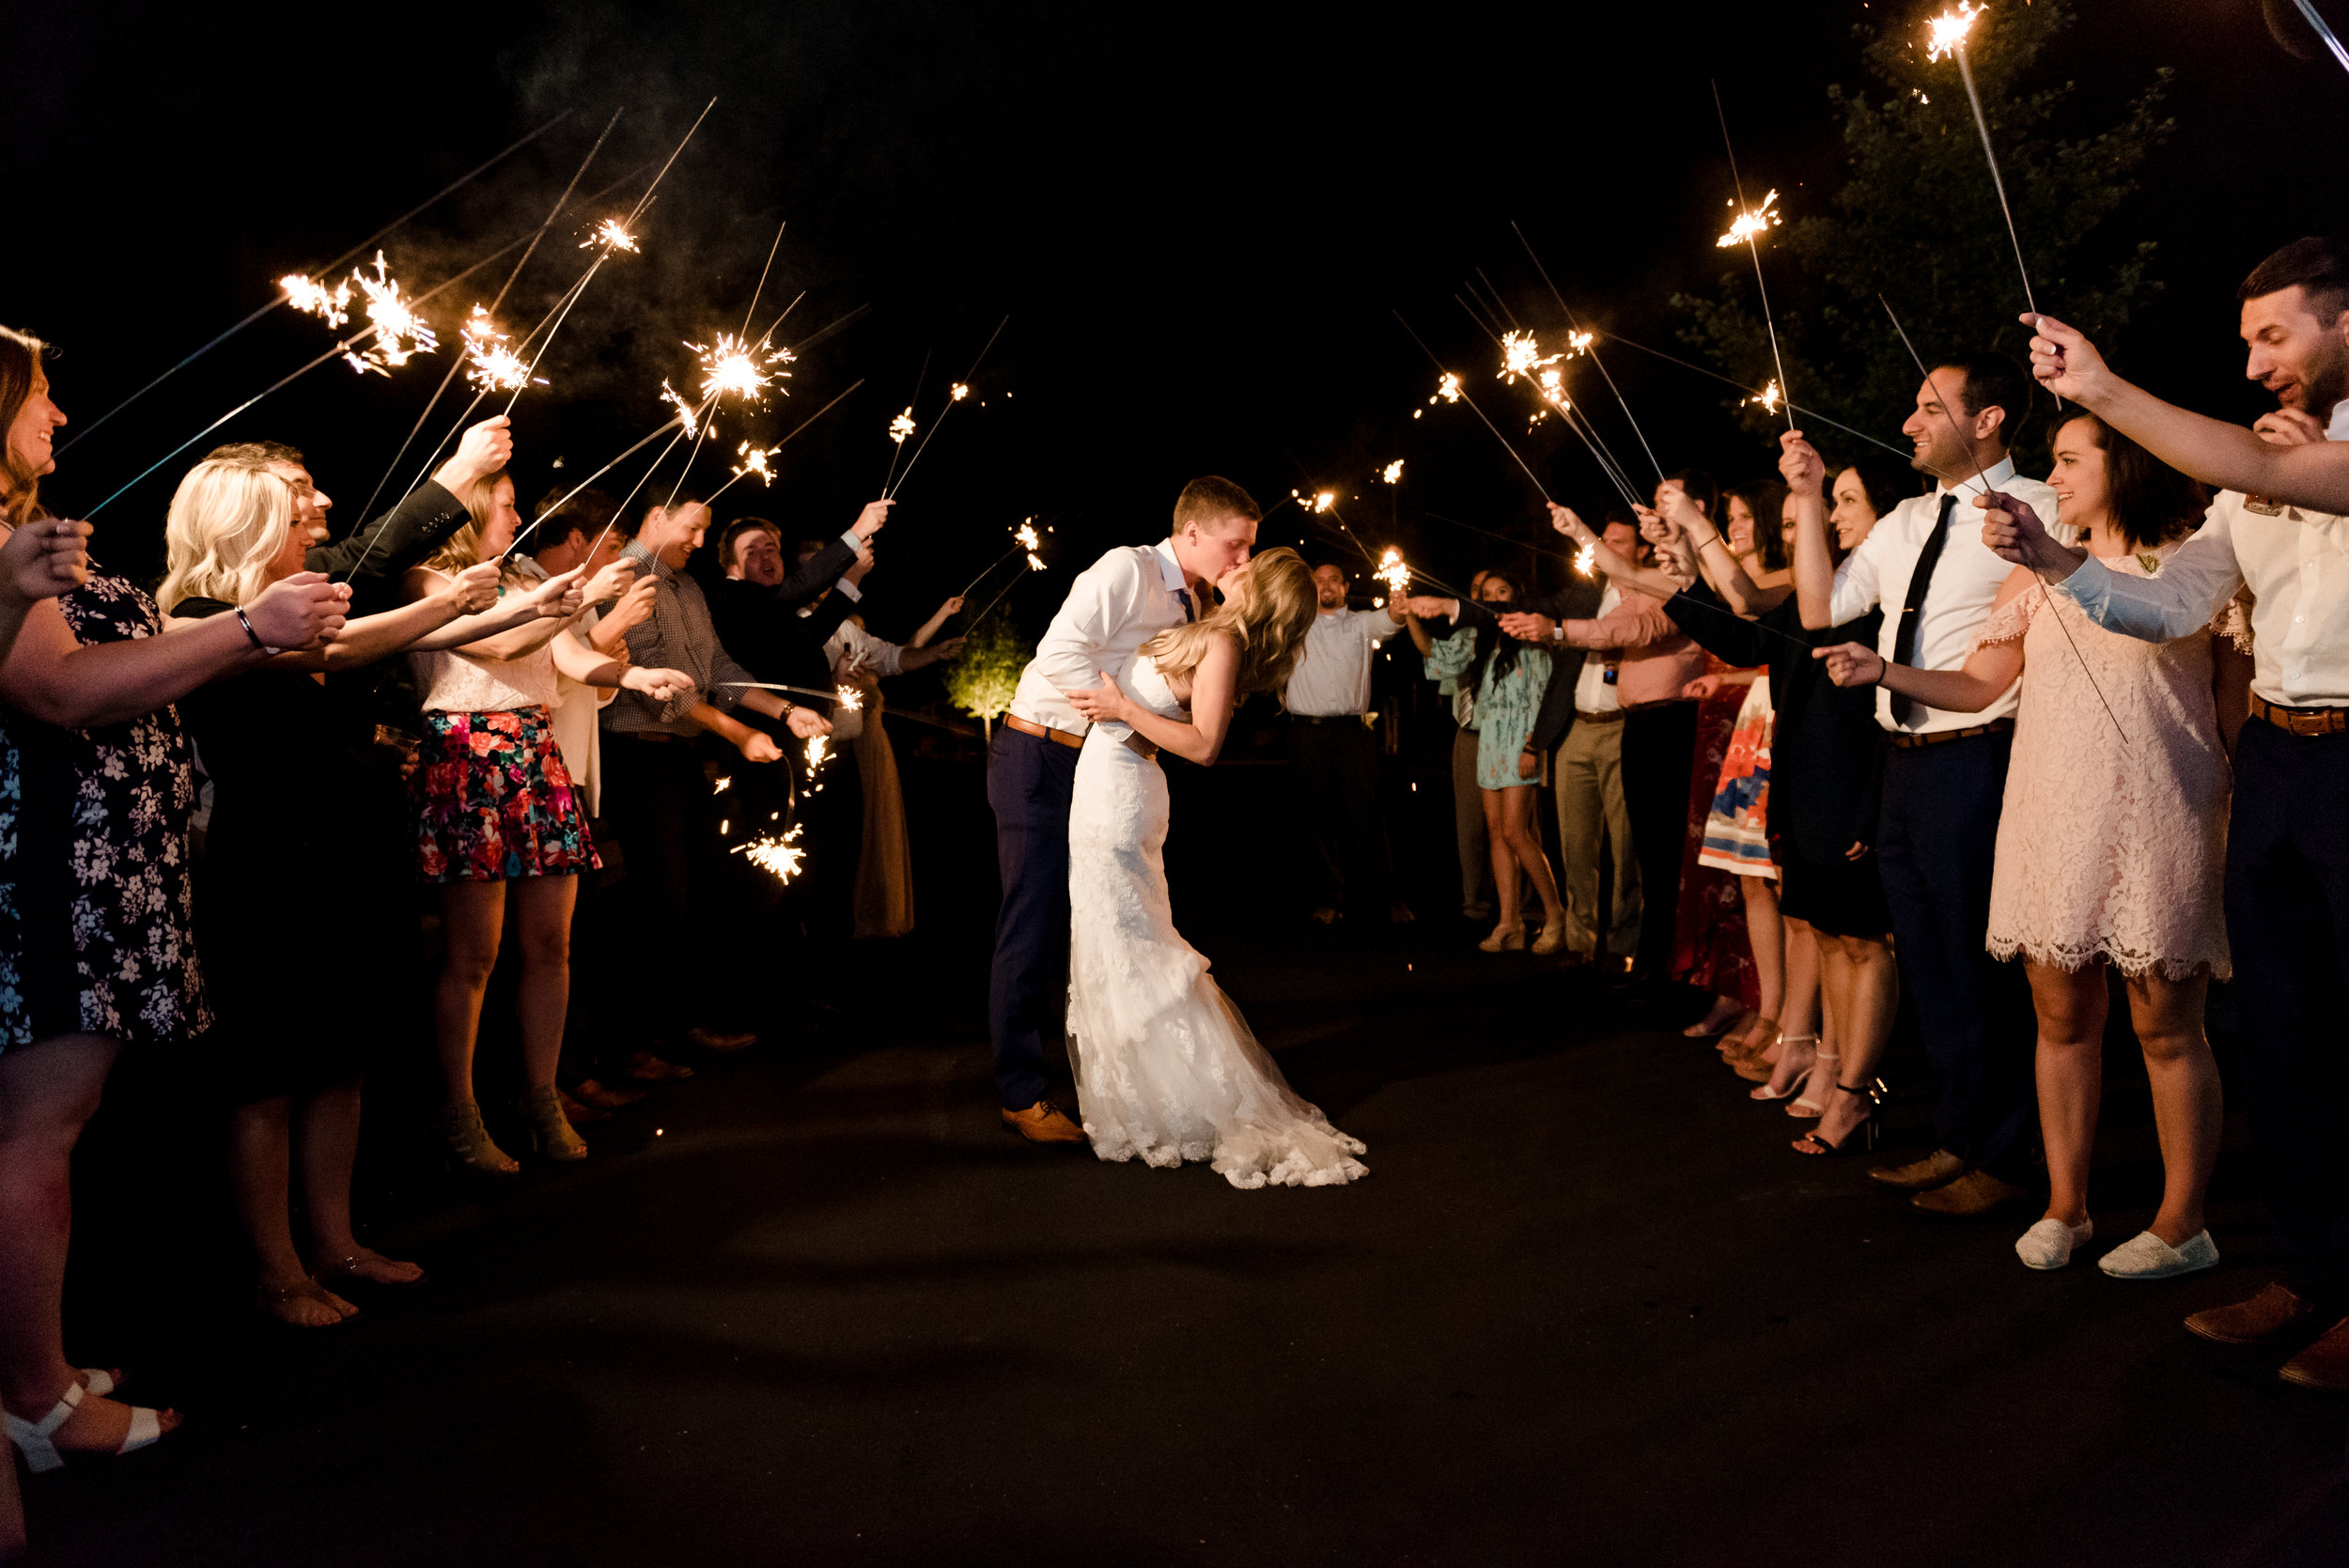 Minneapolis Wedding Photographer - Sparkler Exit